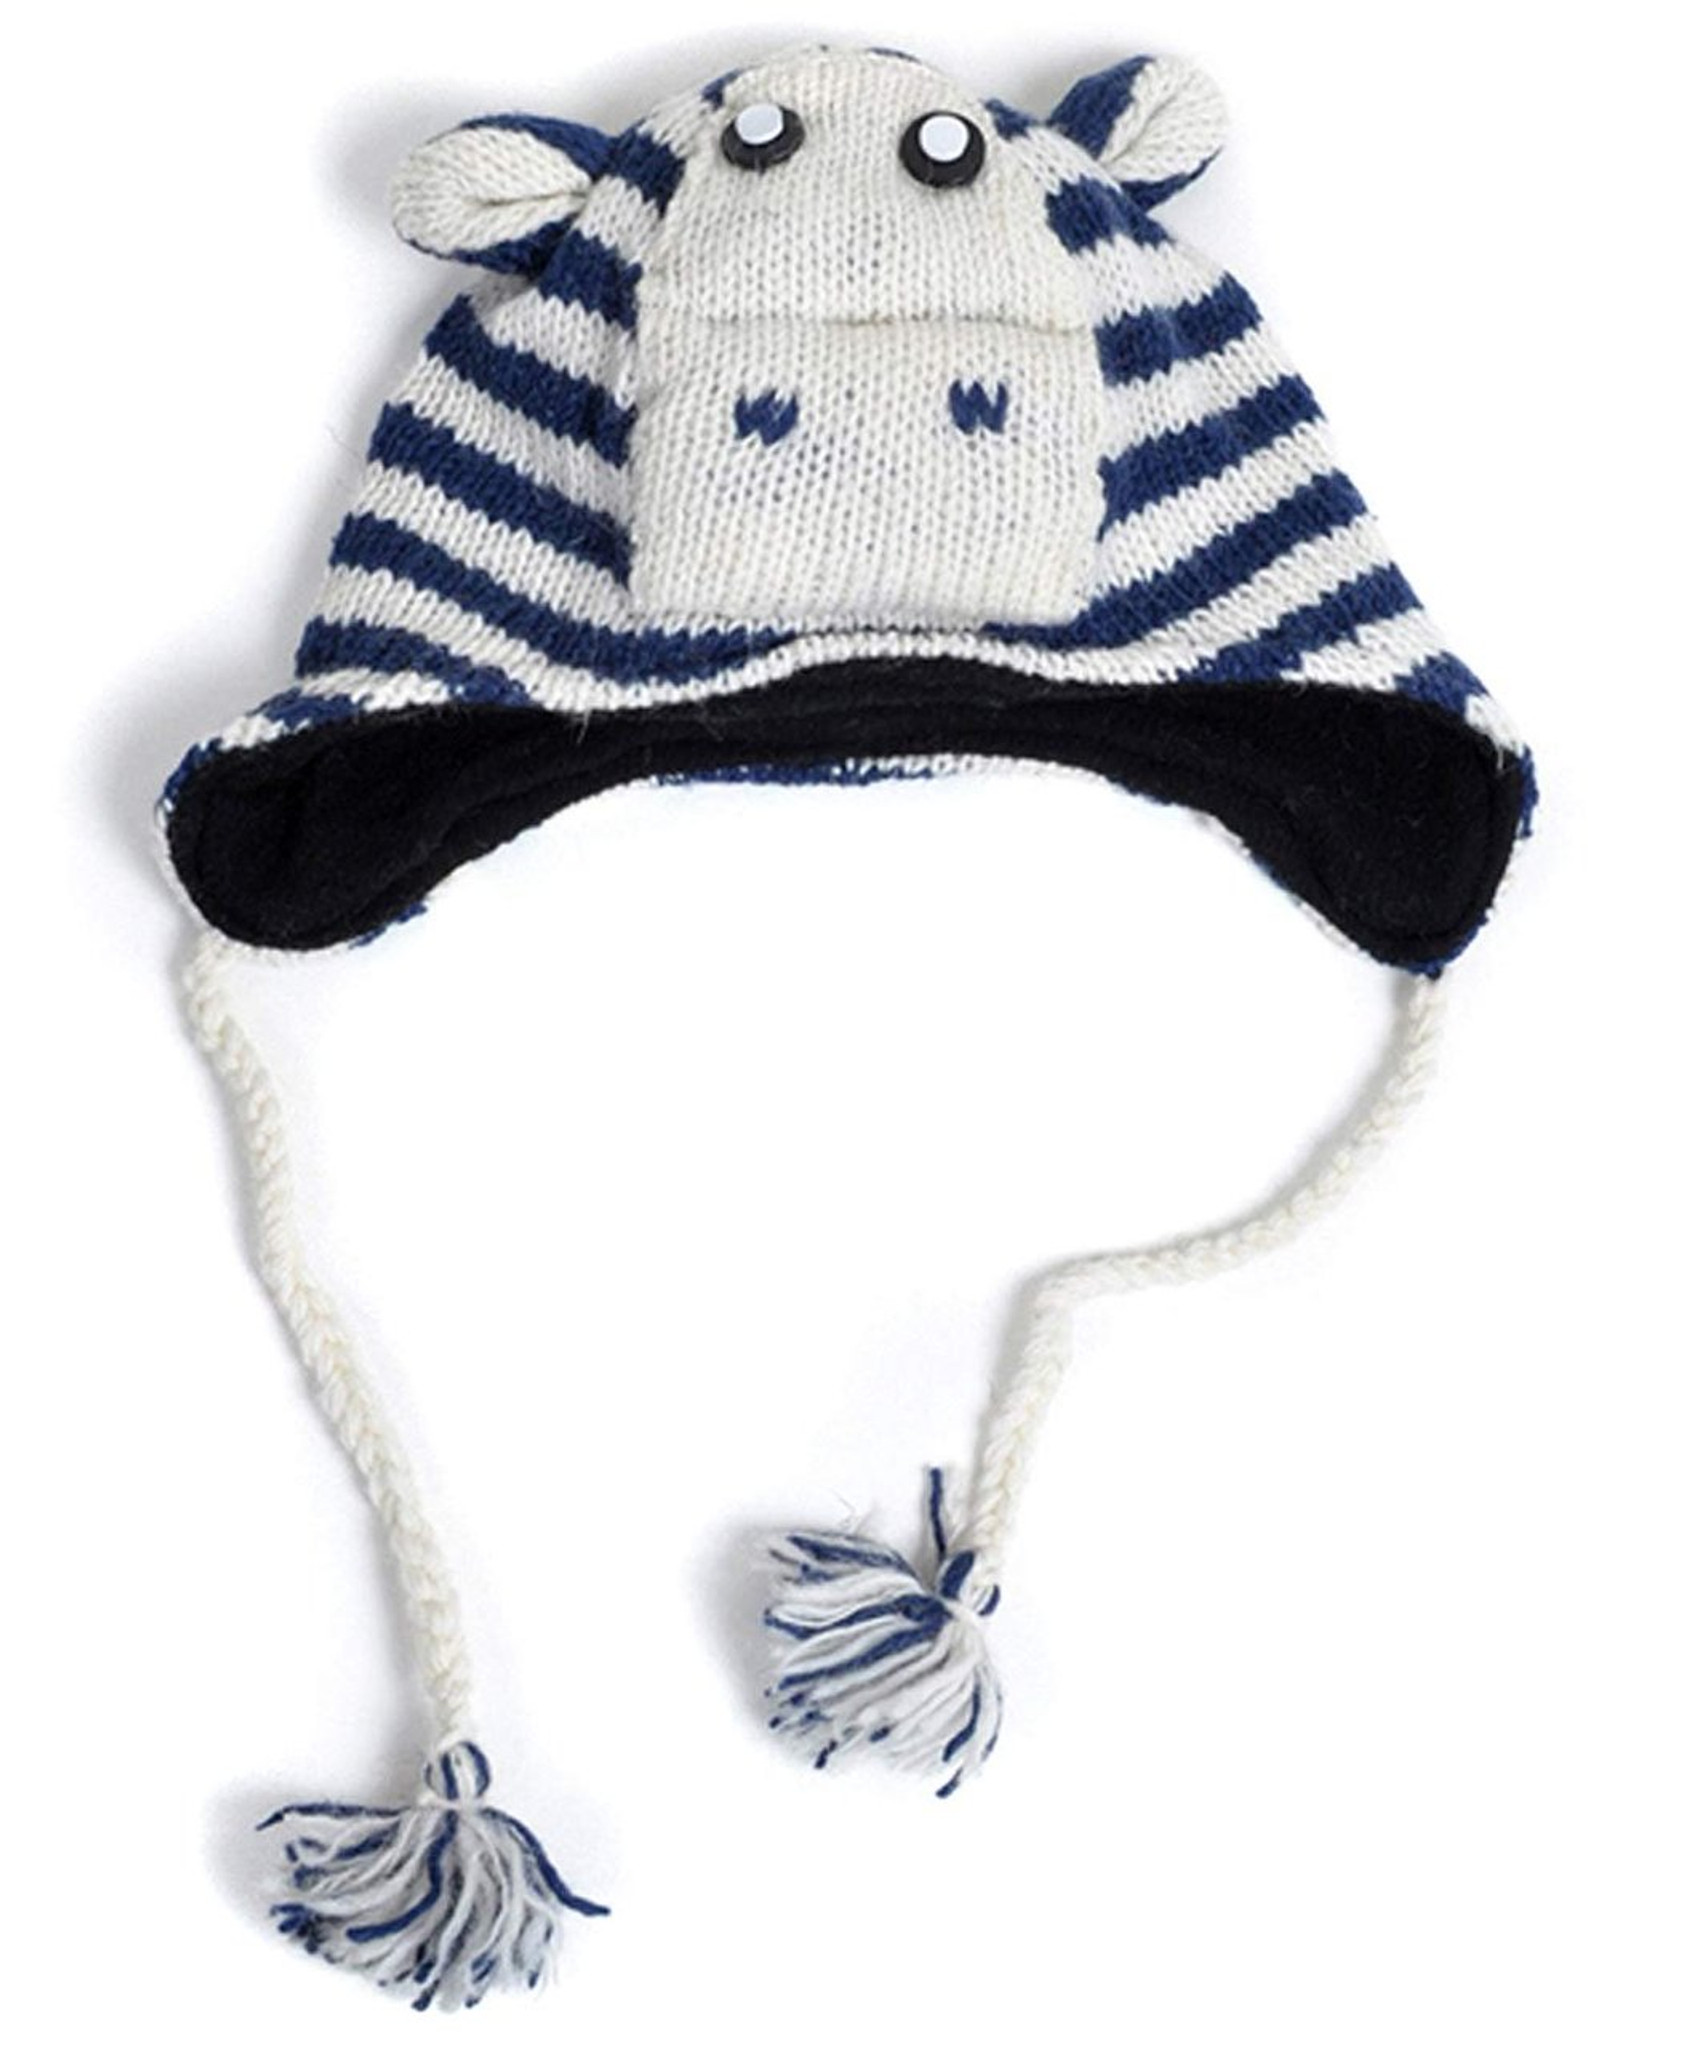 5d49a9317 100% Wool 'Hat-imals' Plush Knit Winter Hats (Wool Collection) (AHW002  (Zebra))